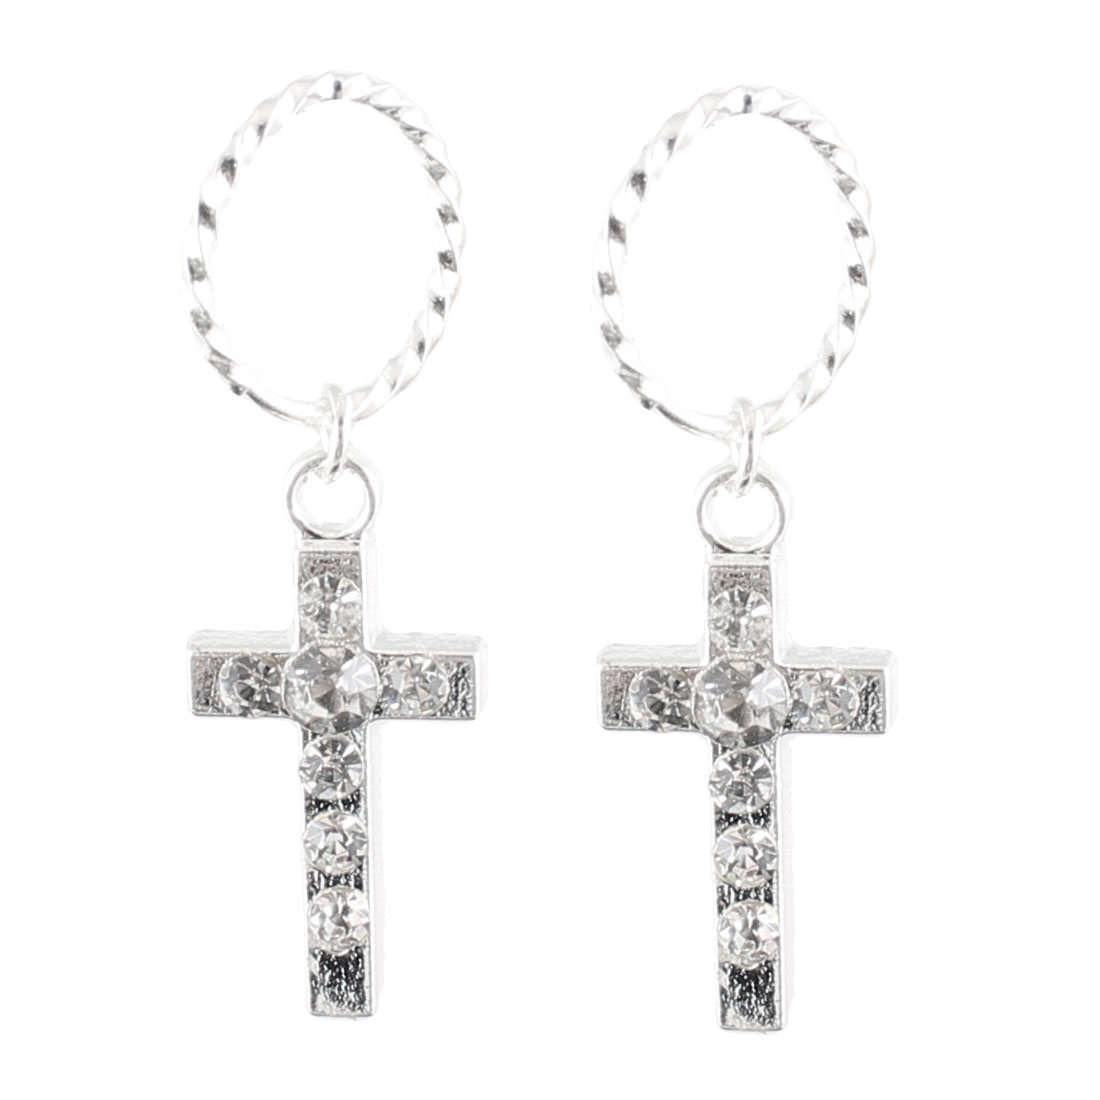 Woman Silver Tone Glittery Rhinestone Inlaid Cross Dangle Earrings Pair